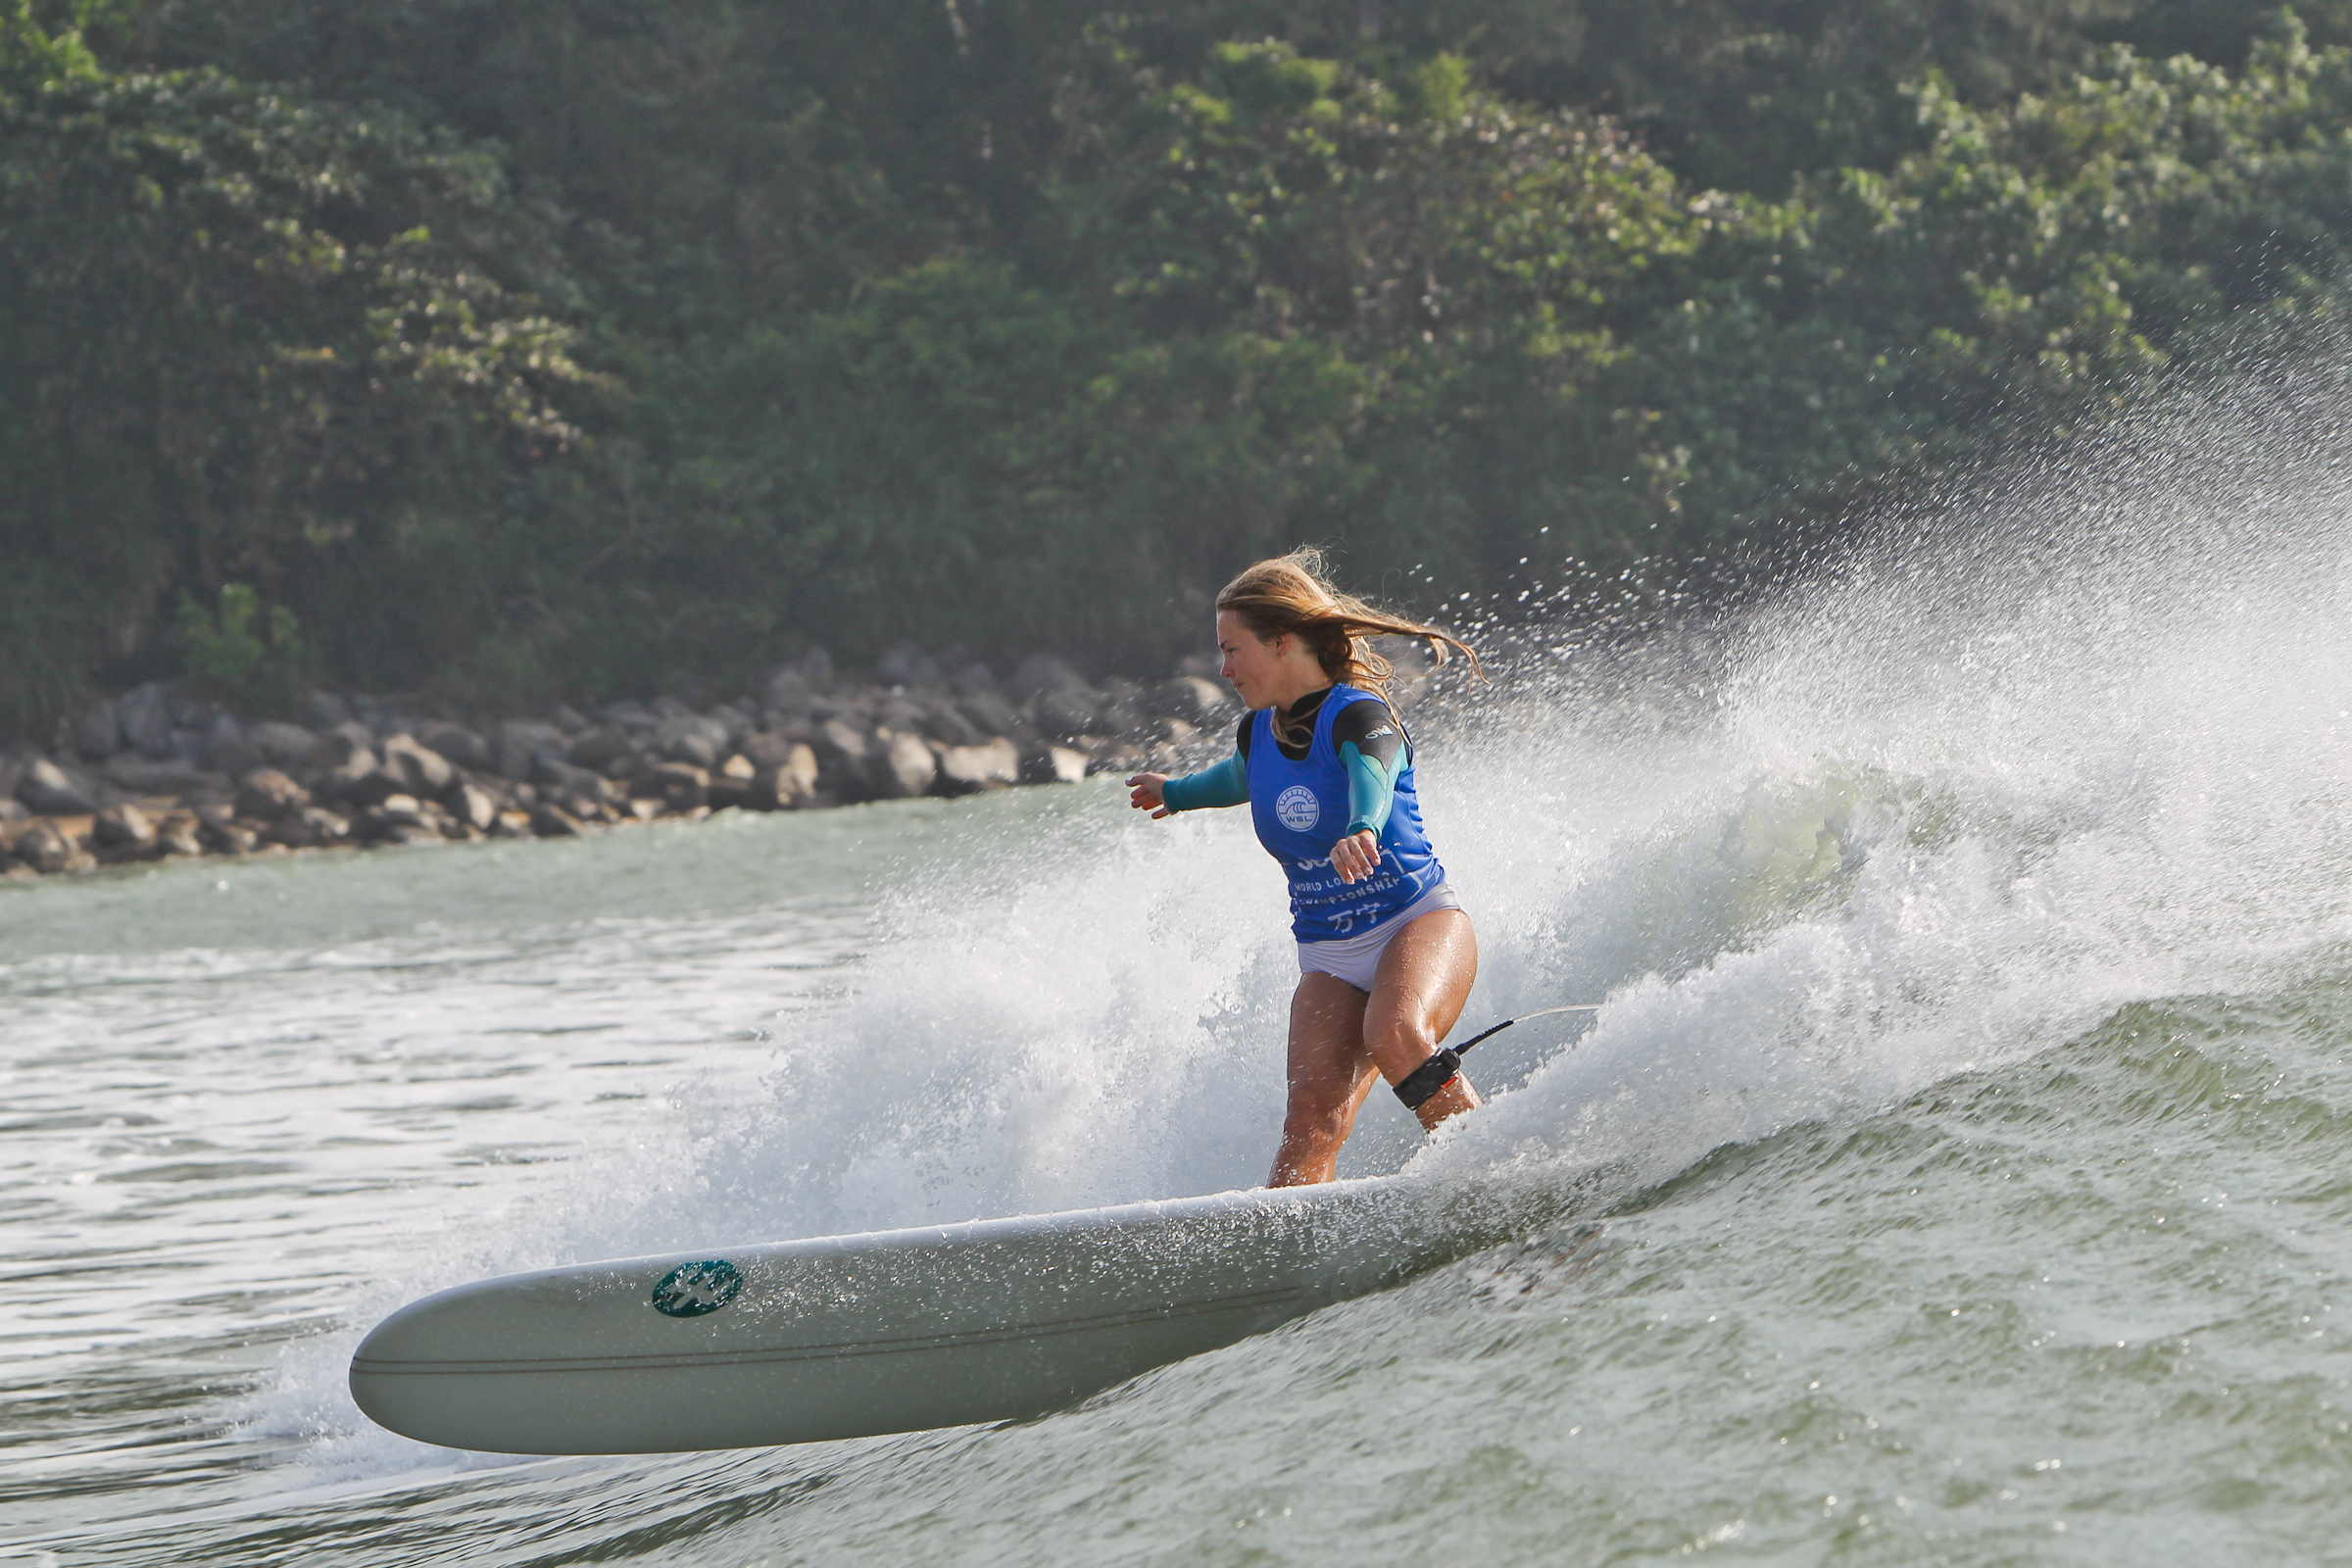 Photo: San Clemente's Tory Gilkerson took the Women's World Longboard Championship on Dec. 9 on the Chinese island of Hainan. Courtesy WSL/Bennett